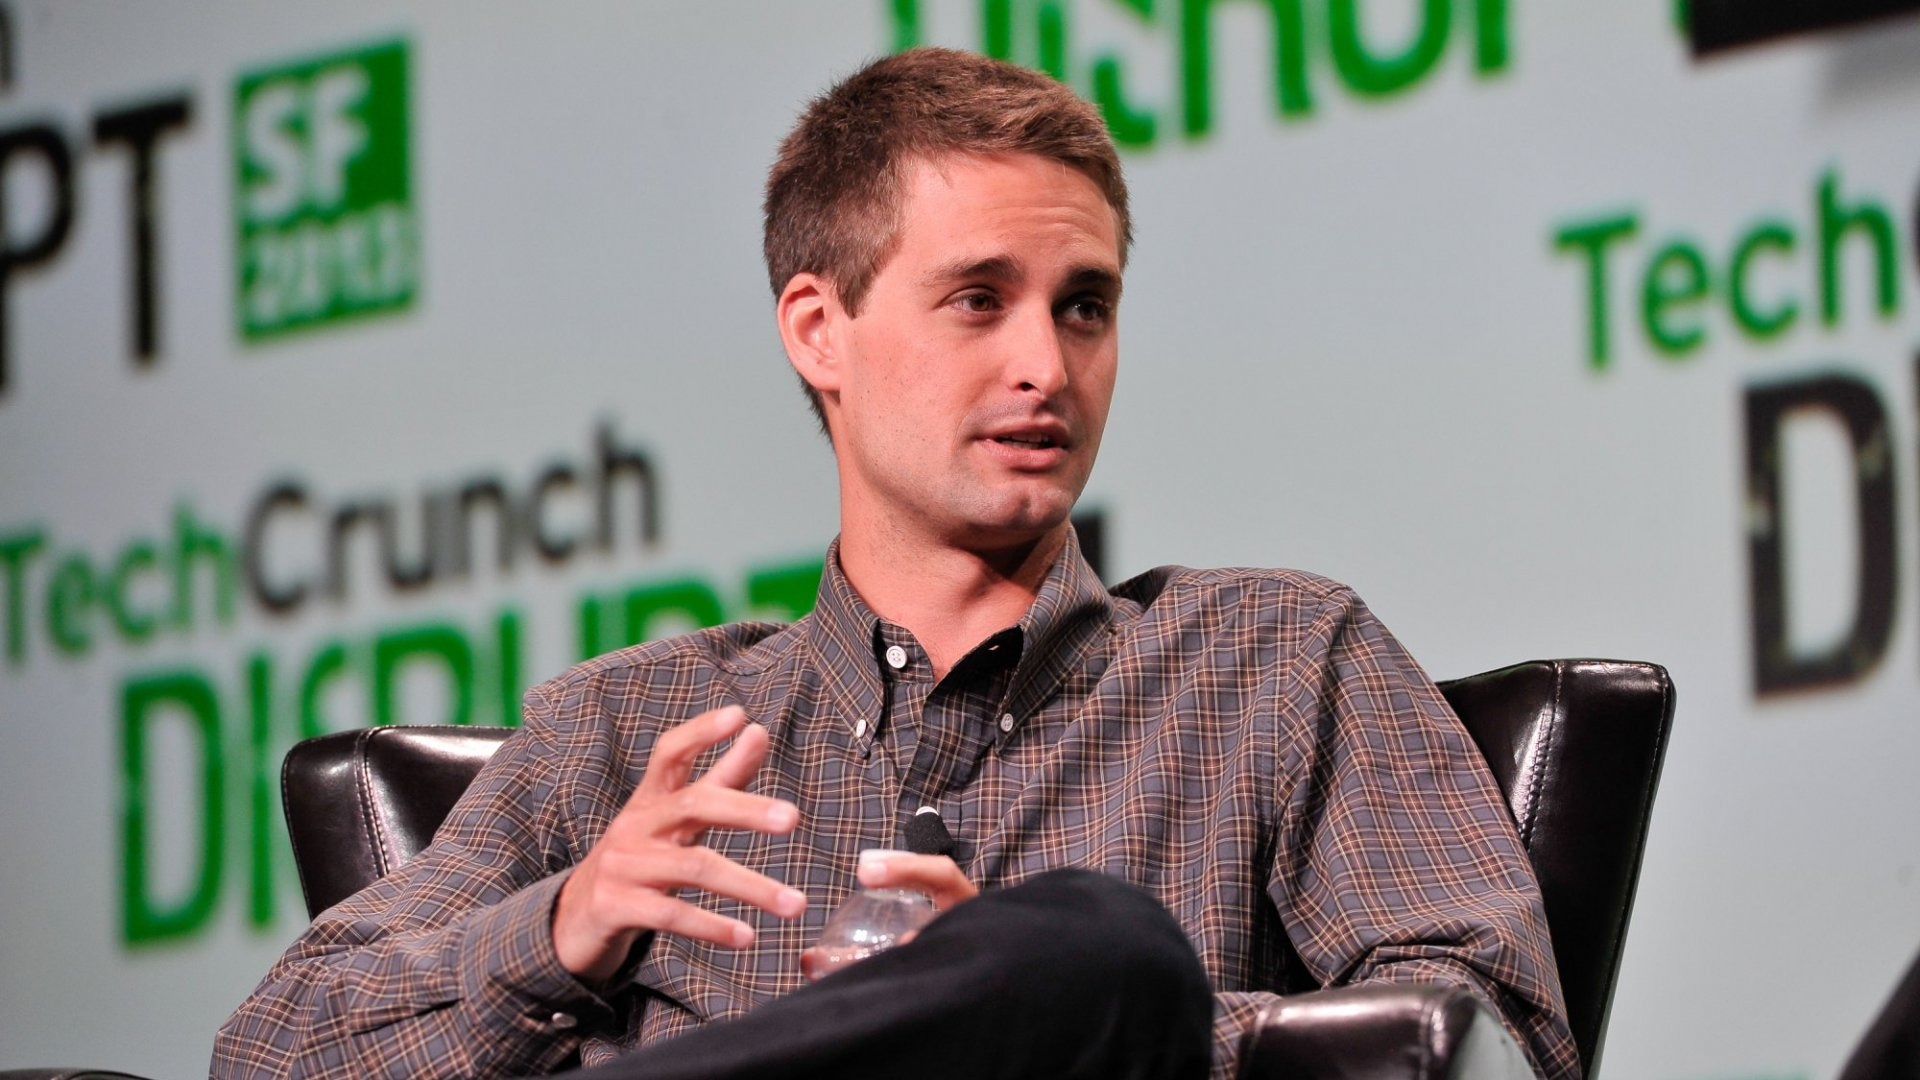 Snapchat's Evan Spiegel on Why the Company Needs to IPO